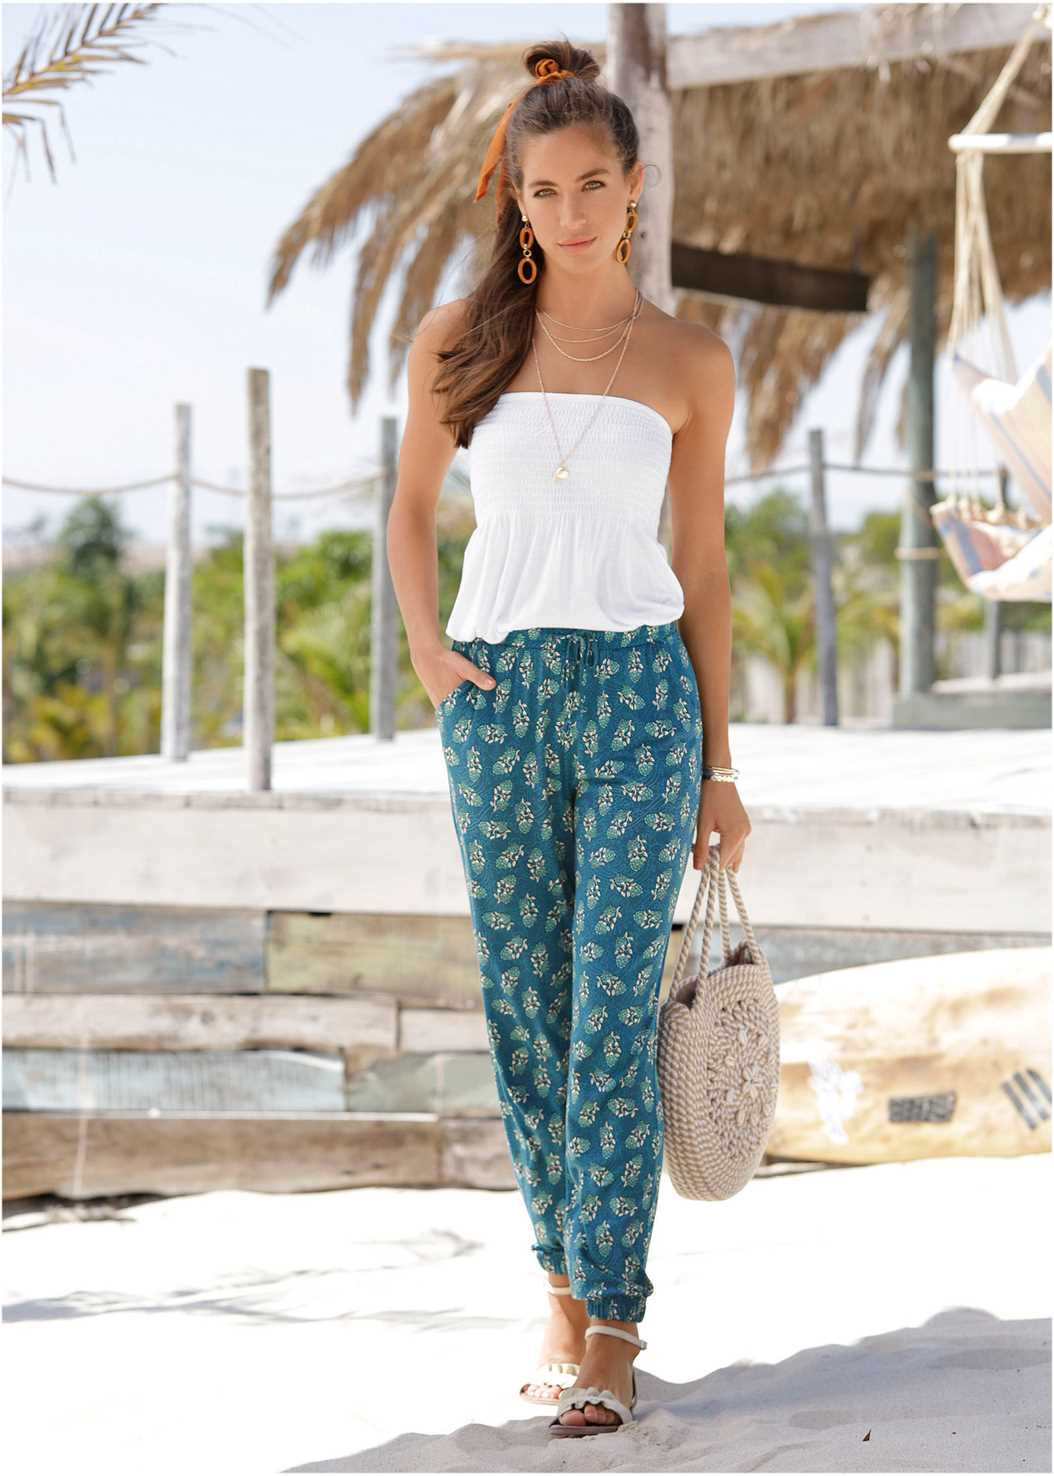 Printed Jogger Pants,Basic Cami Two Pack,Strapless Bra With Geo Lace,Double Strap Cork Wedge